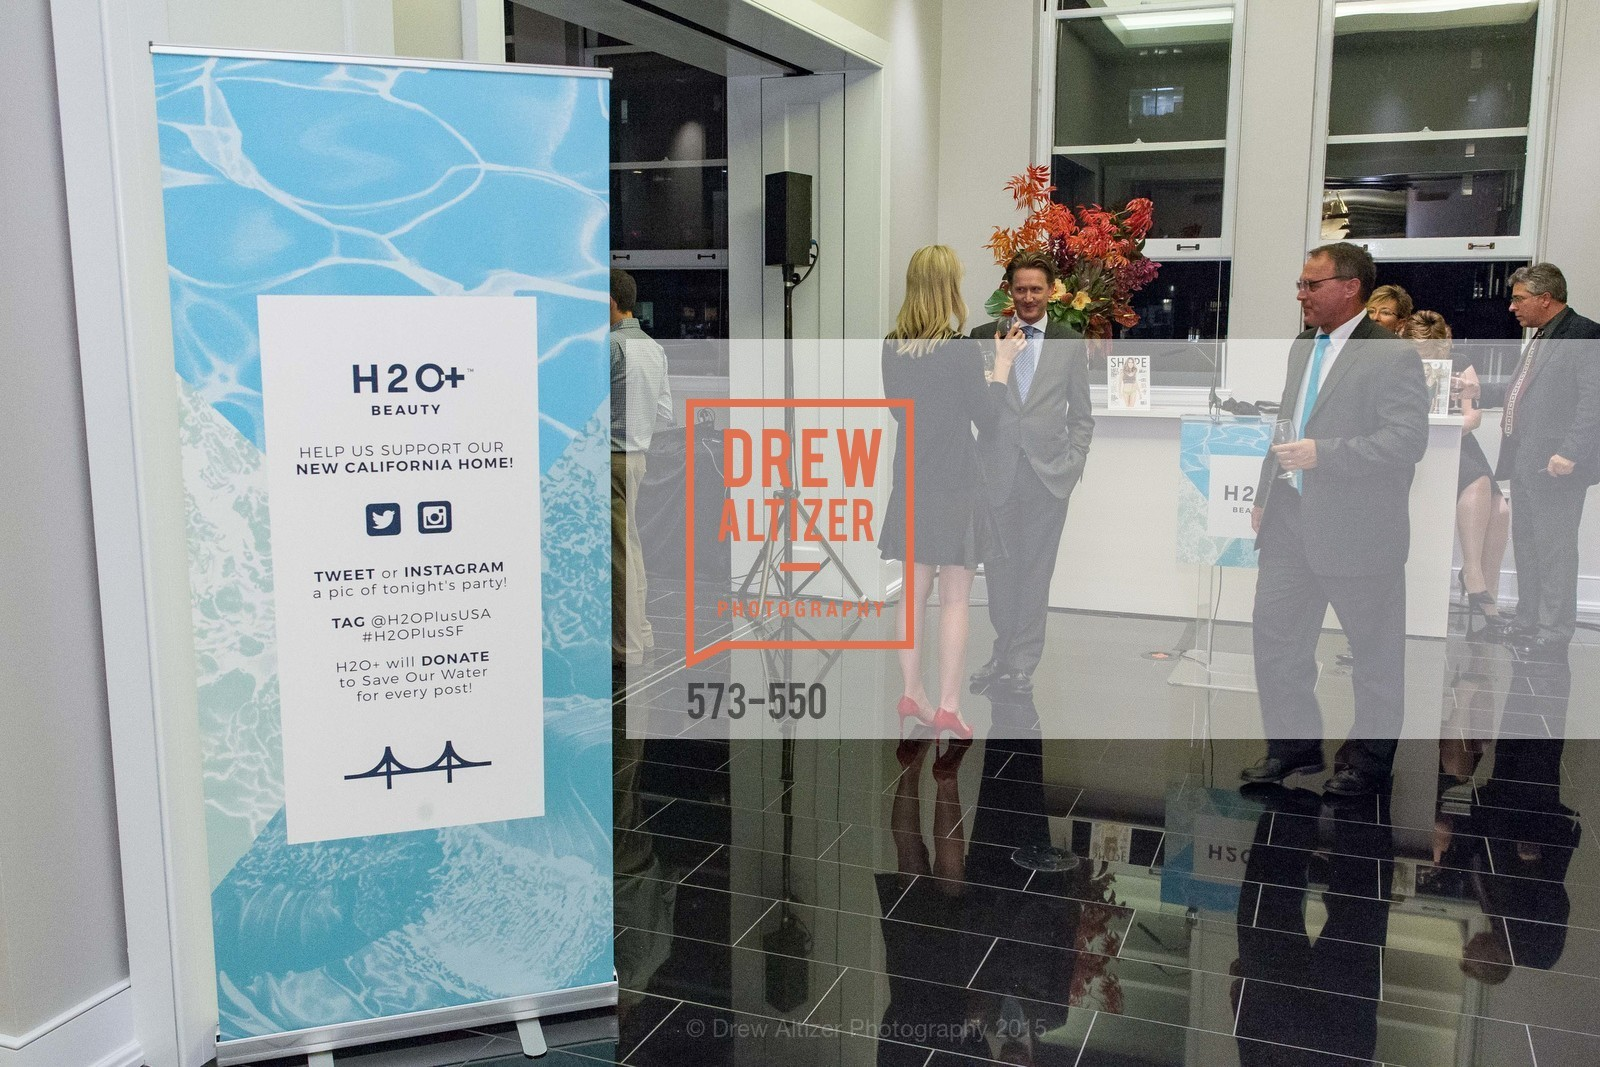 Atmosphere, H2O+ World Headquarters Opening: A New Beauty for the Bay, 111 Sutter St. 111 Sutter Street, 22nd Floor, November 18th, 2015